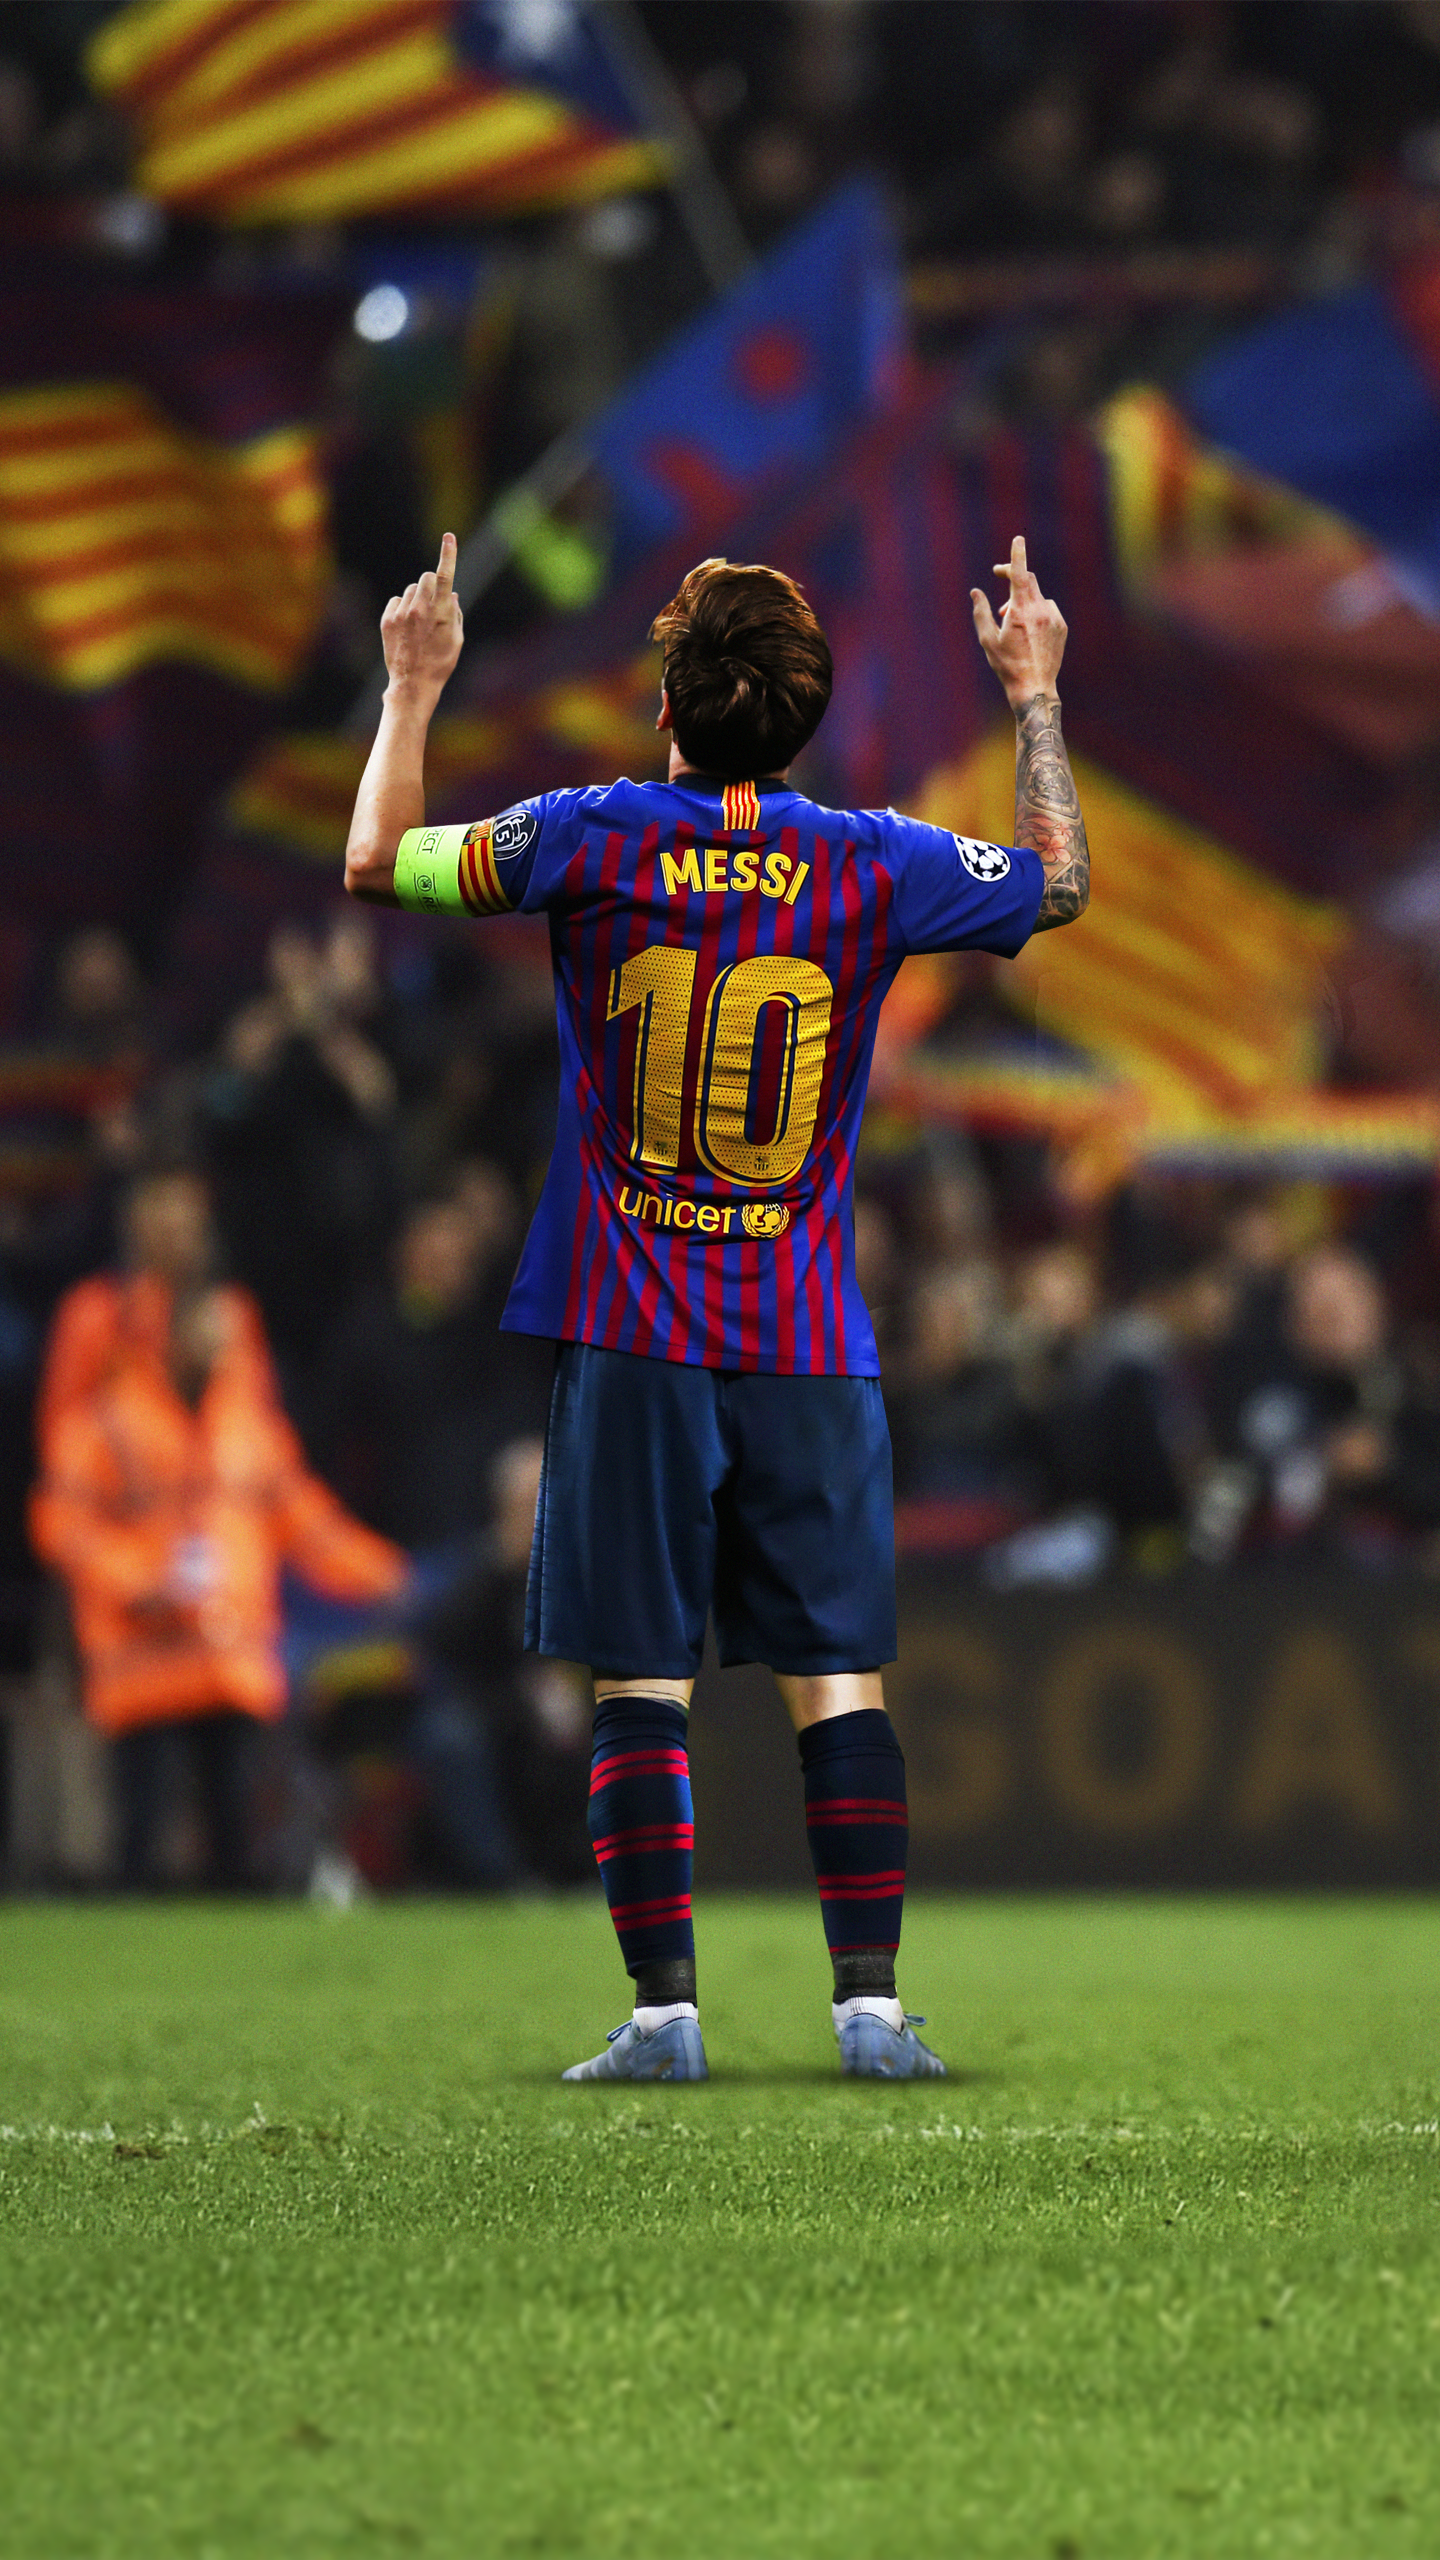 MESSI-GOAT-MOBILE